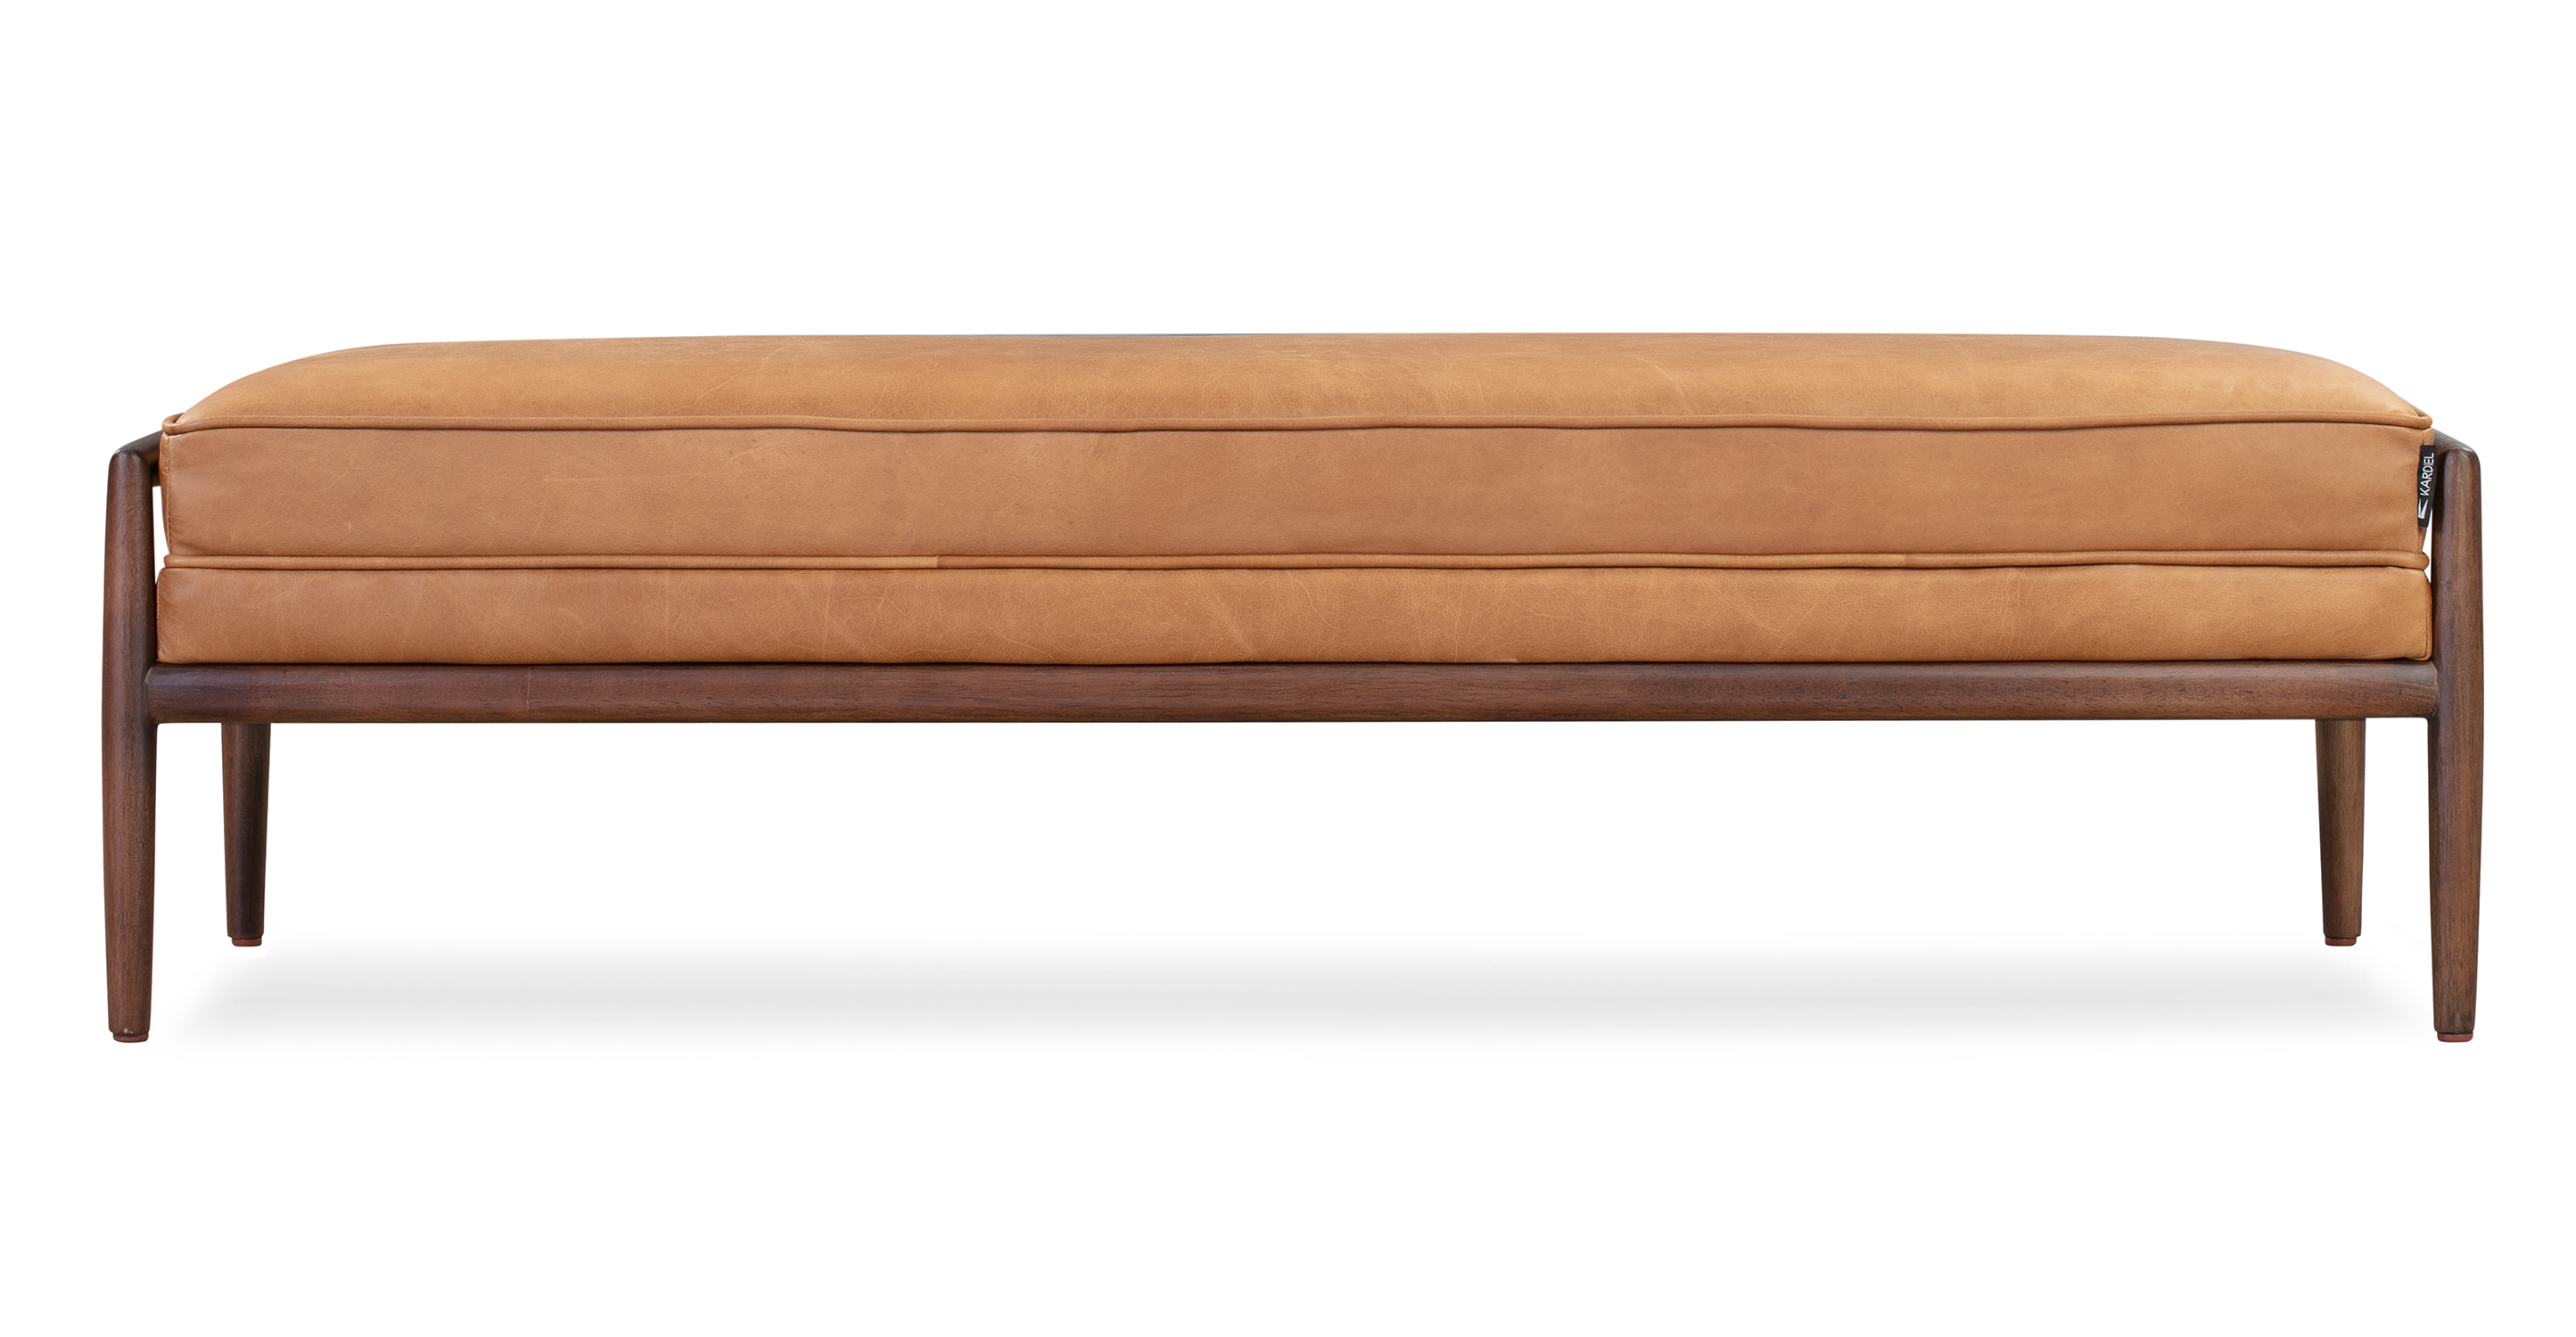 "Fritz 55"" Leather Bench, Russet Top Grain Full Aniline Leather"